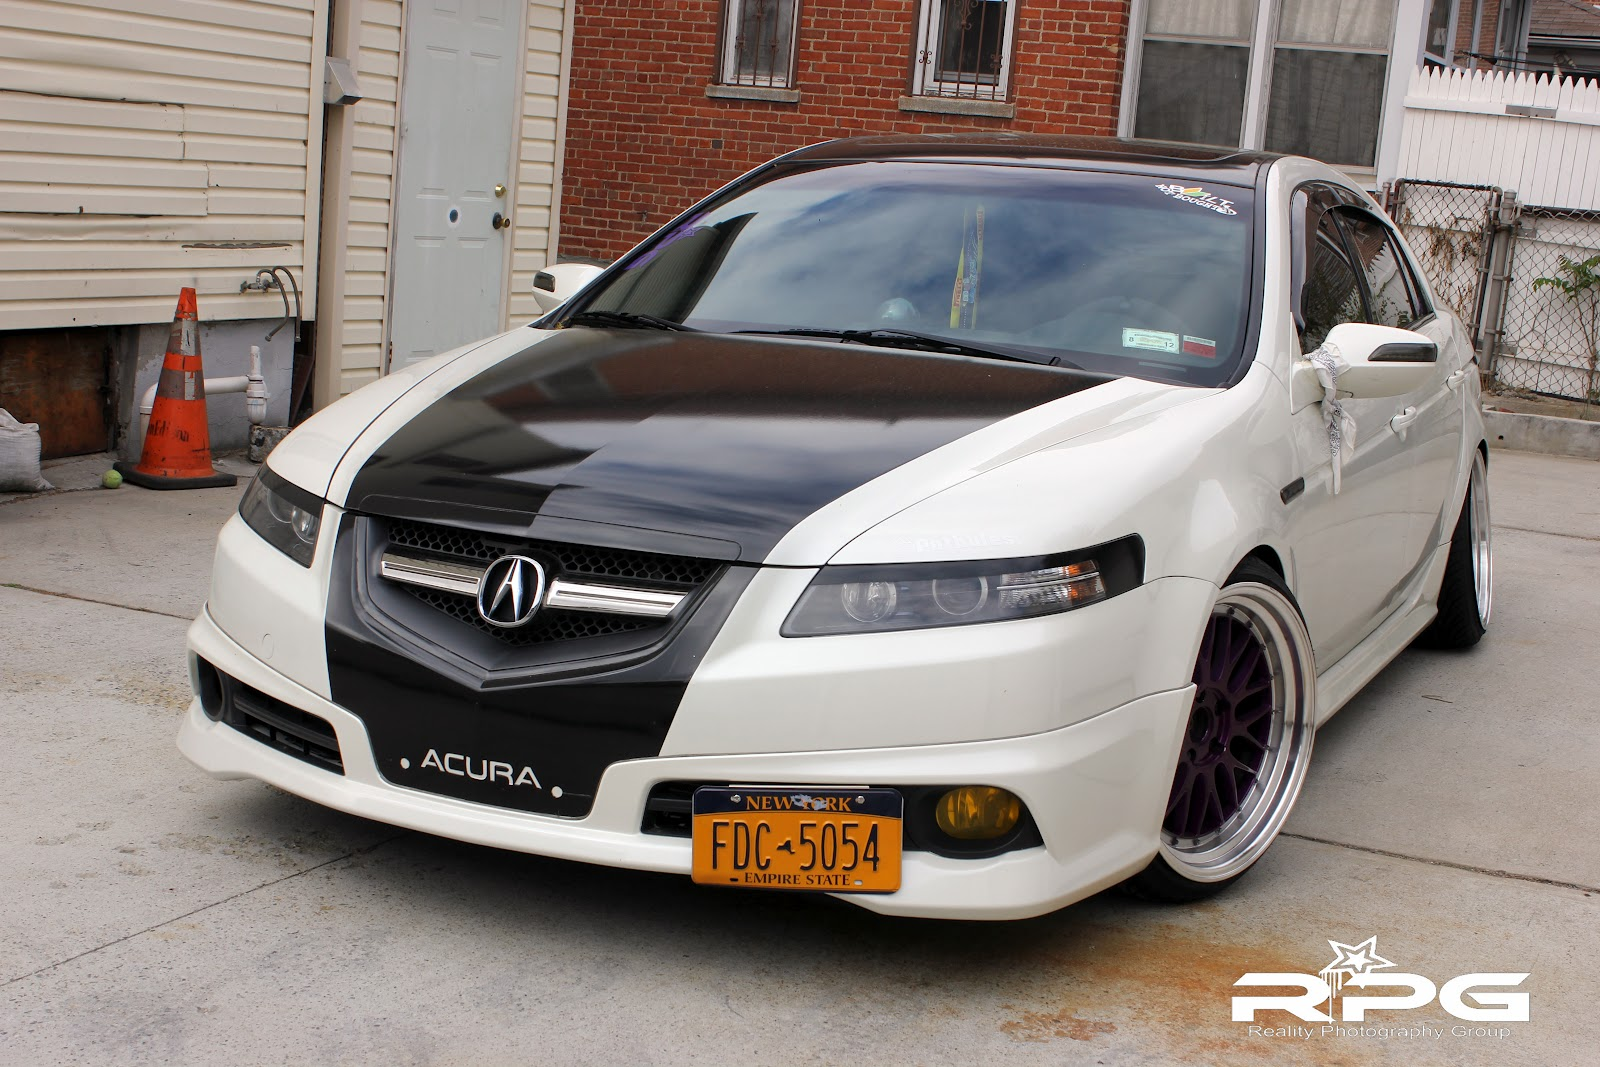 Body Kit Acurazine Acura Enthusiast Community